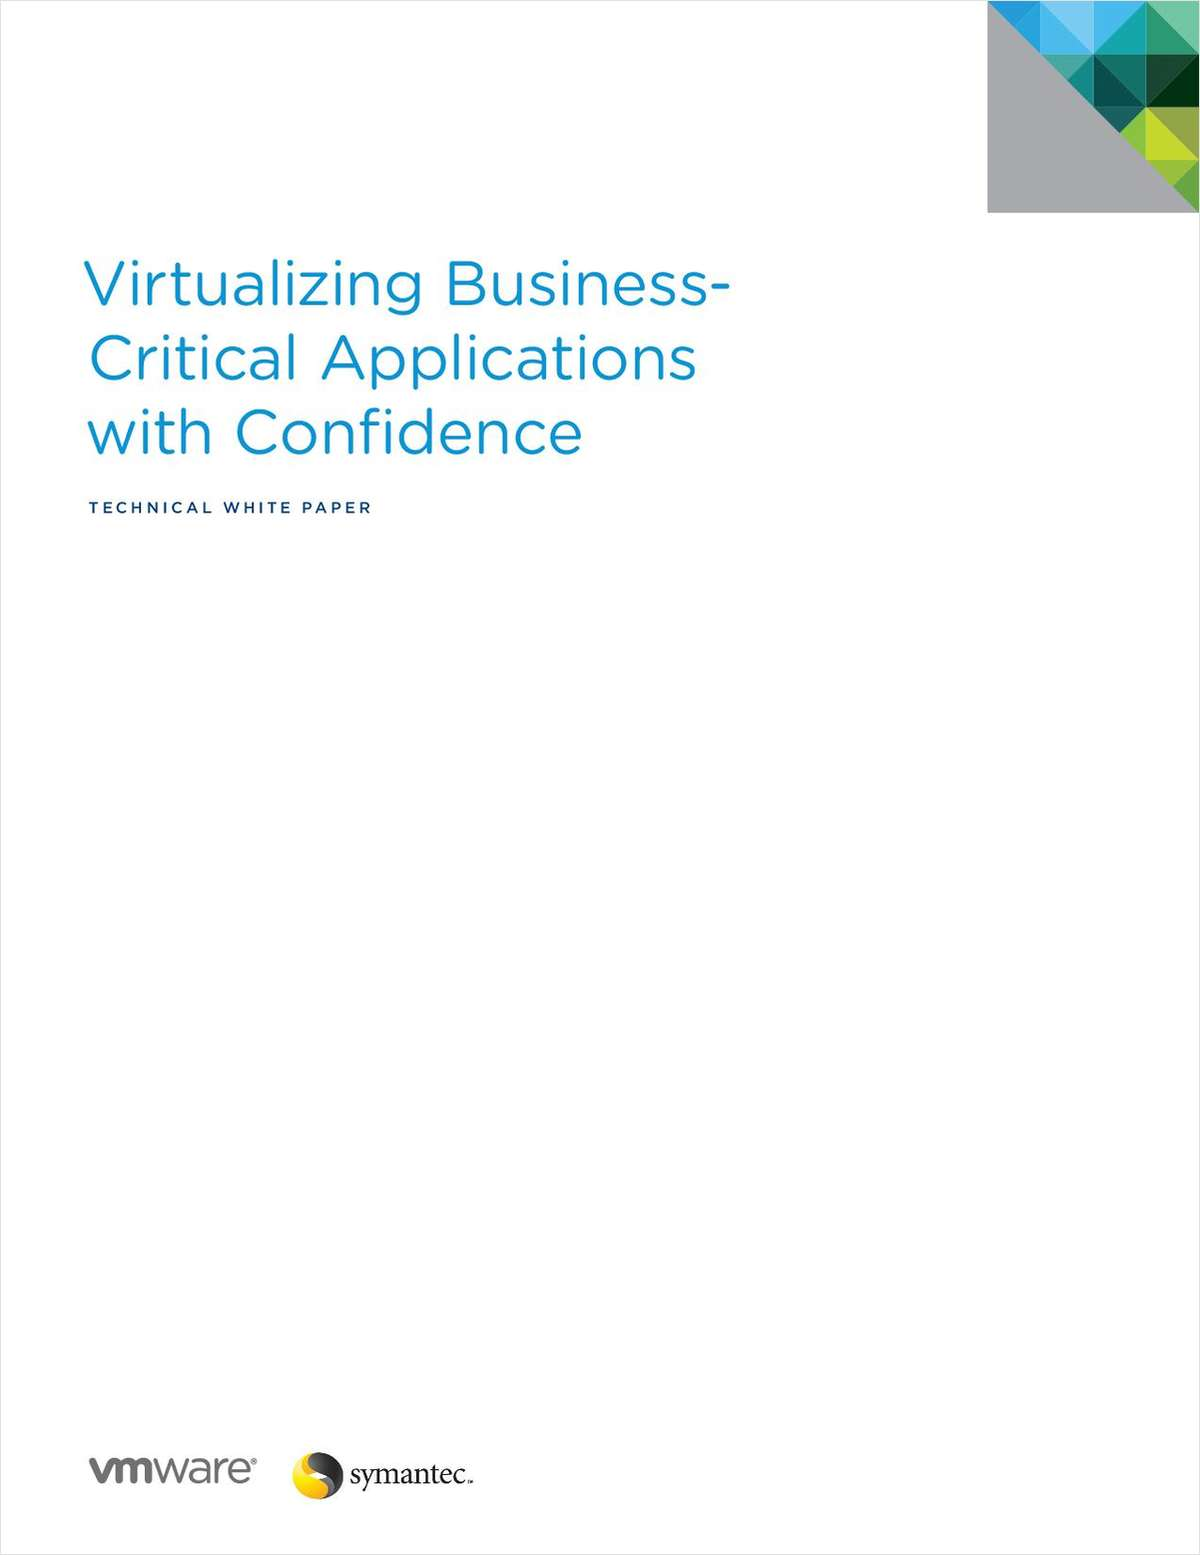 Virtualizing Business-Critical Applications with Confidence